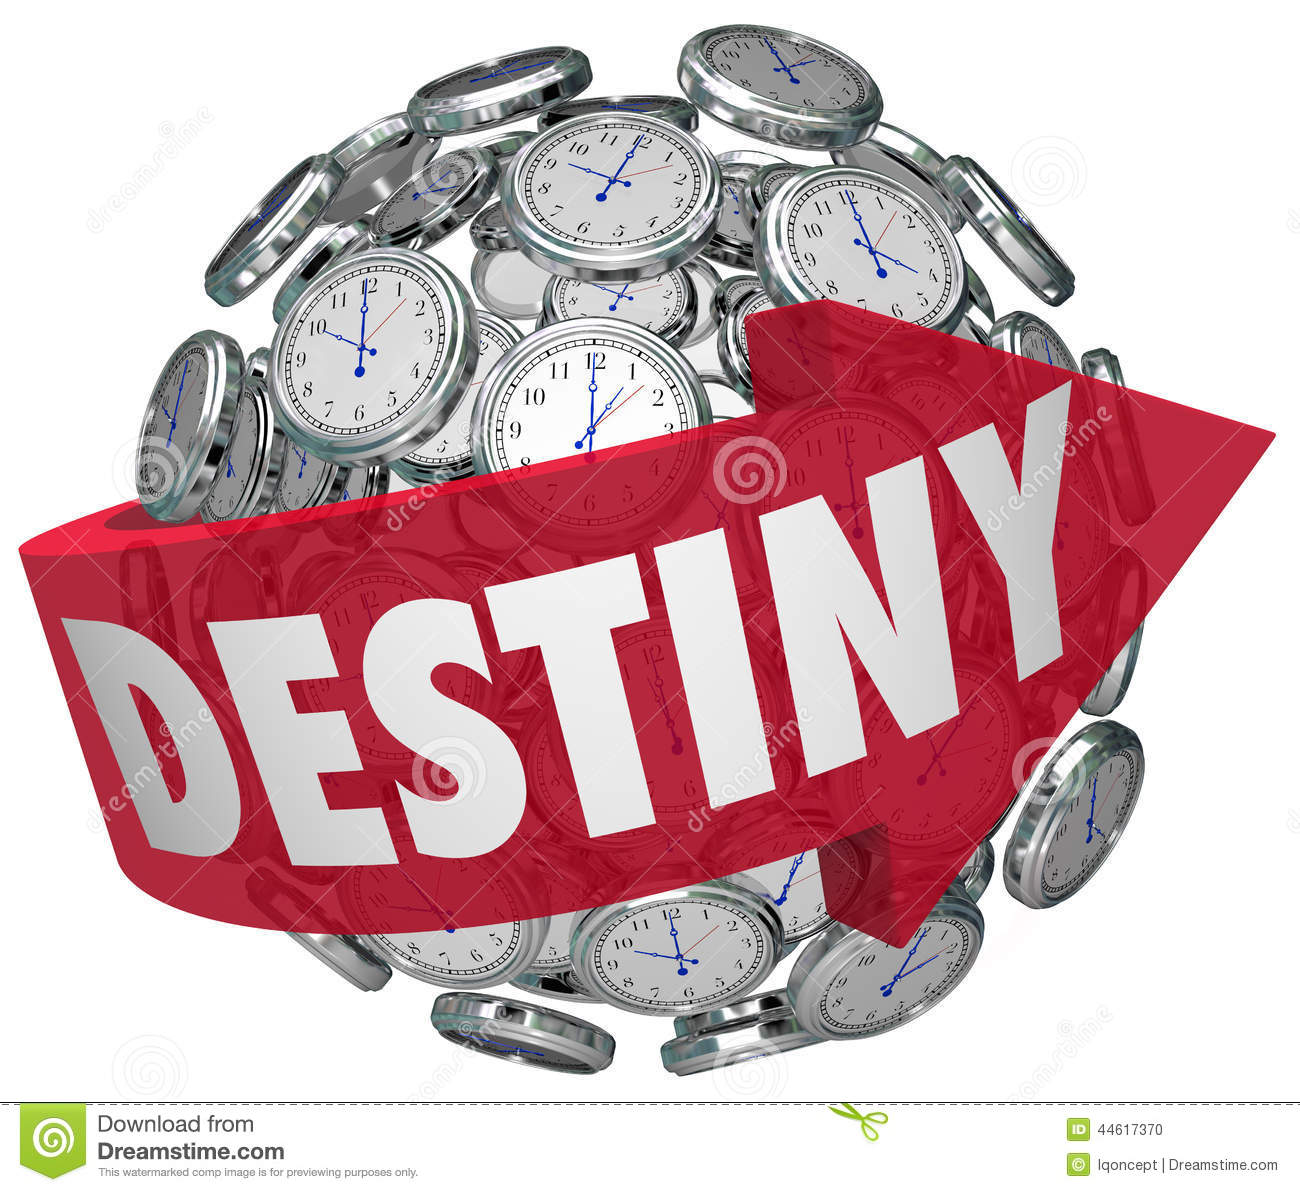 fate and destiny determine macbeths outcome essay Plenty of support would be what we are going for on these macbeth takes seriously the question of whether or not fate (destiny) or human will (choice) determines a man's future which suggests that he alone controls the outcome of his own future.